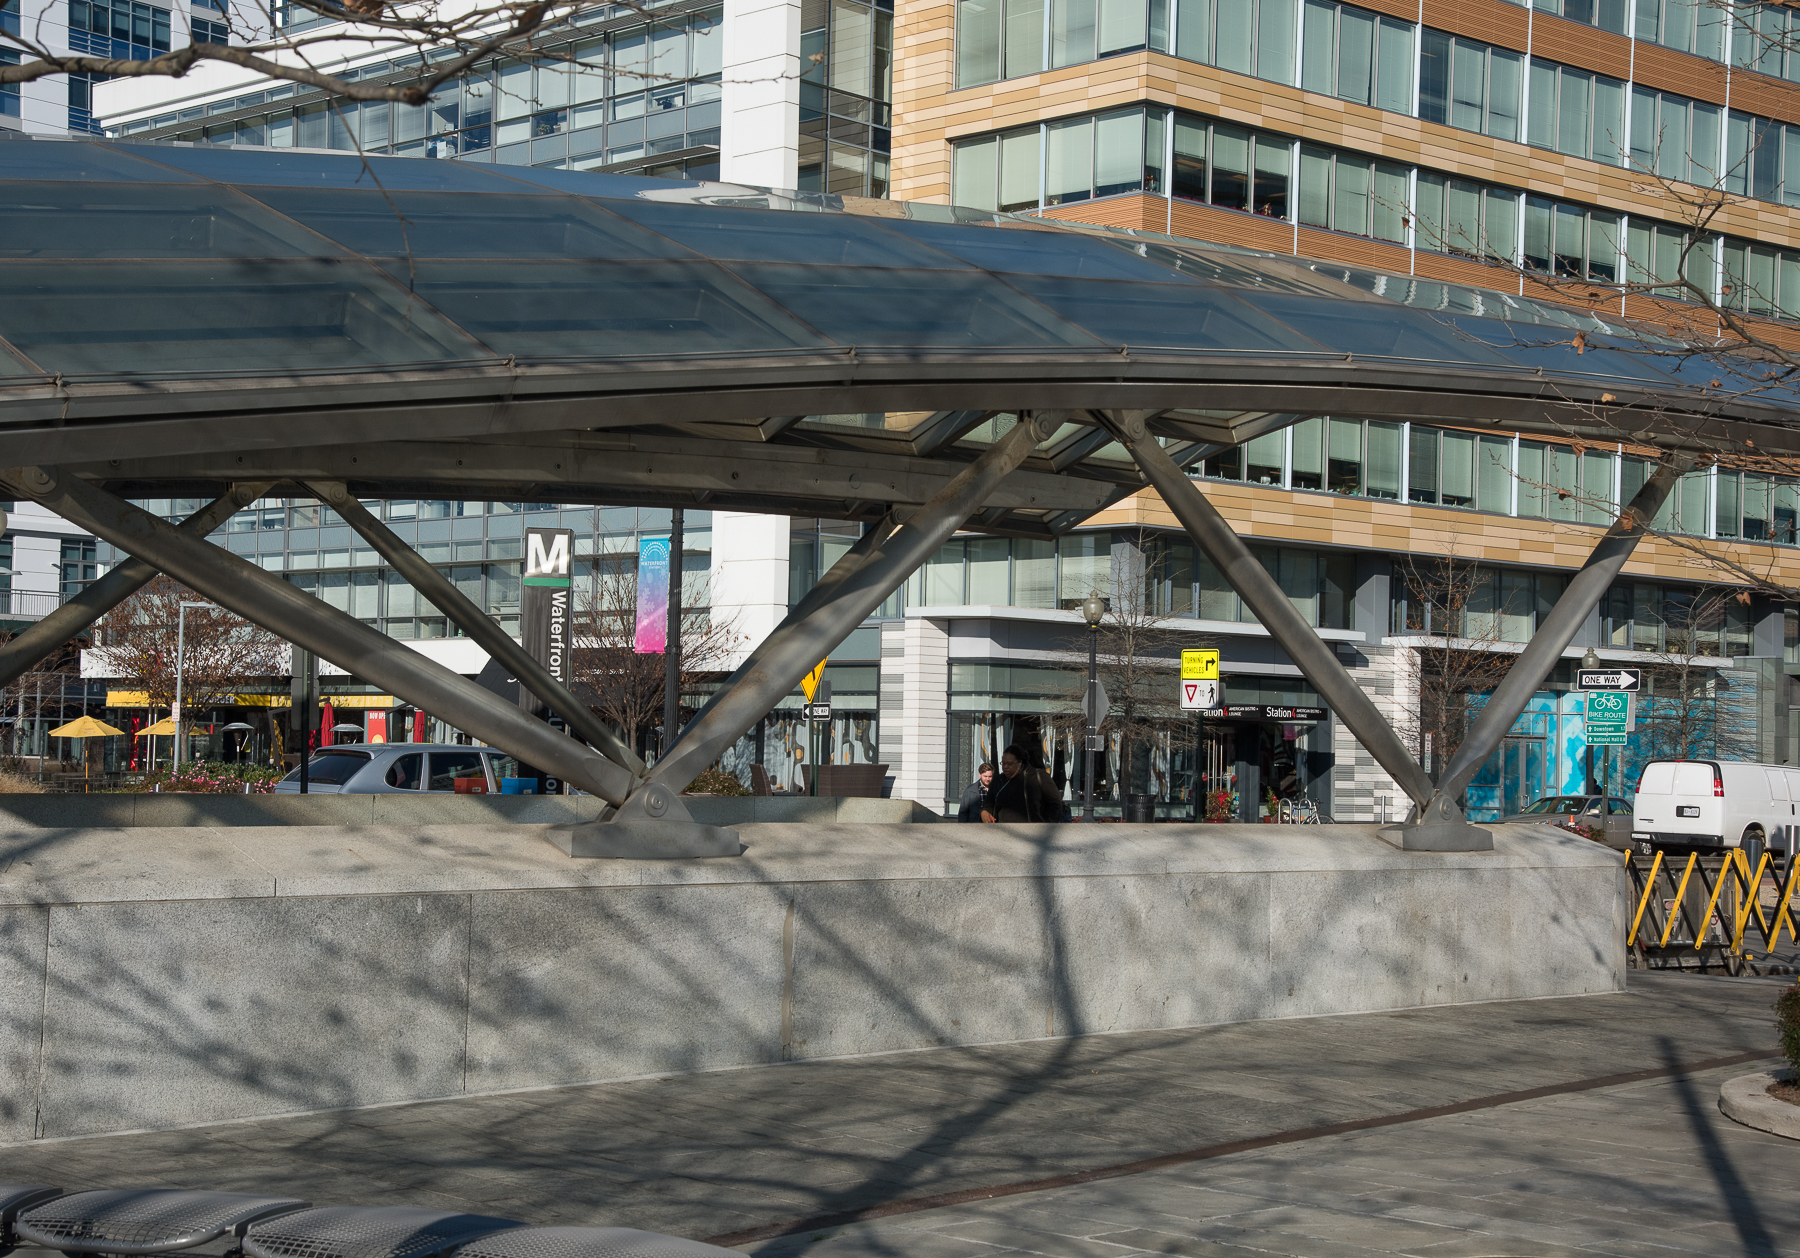 Waterfront Station Entrance Canopy